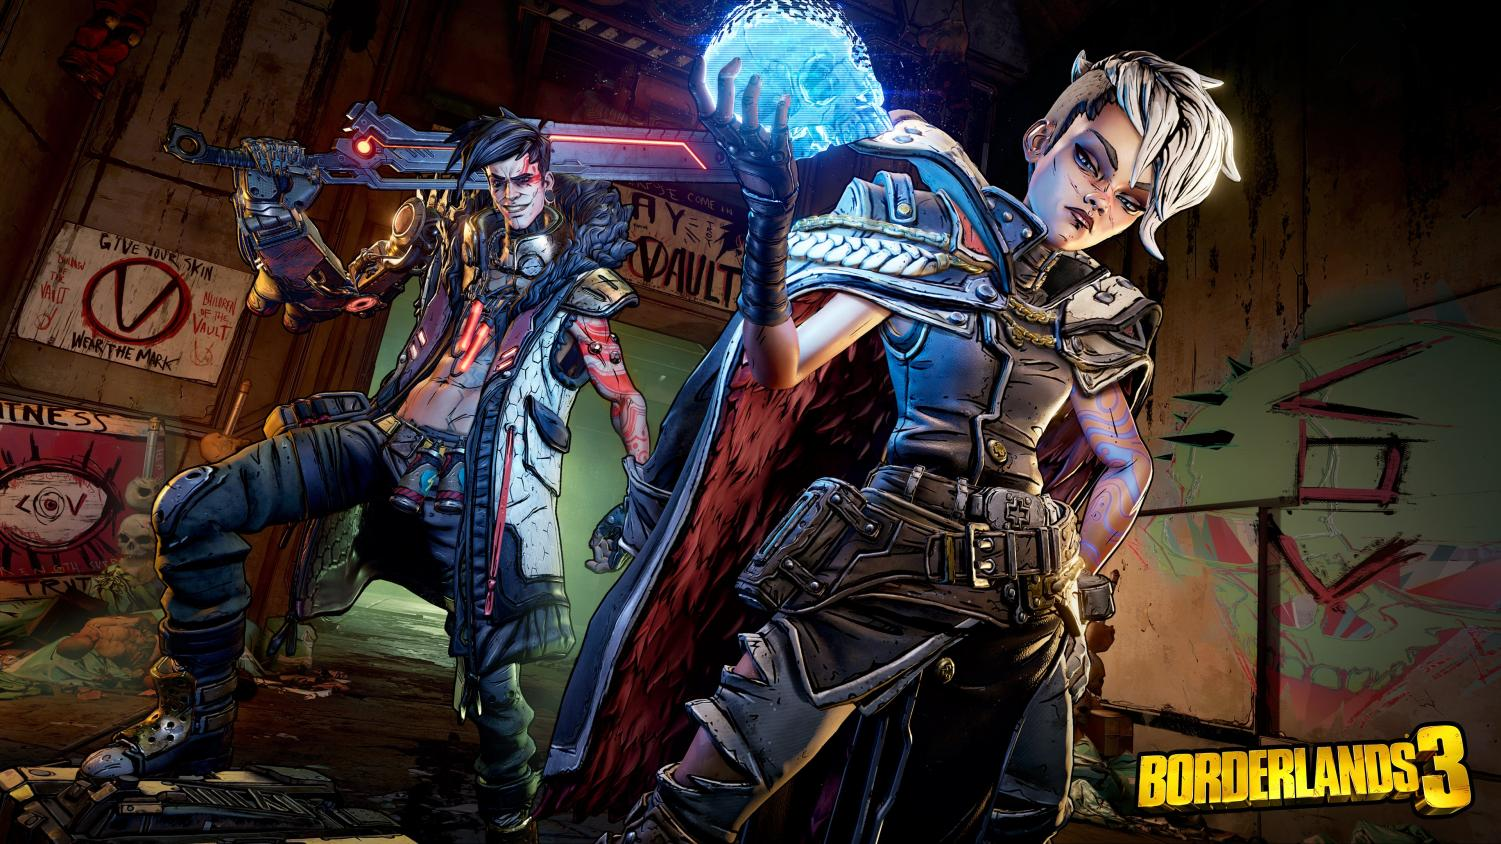 Borderlands 3 to feature around 1 billion in game guns to collect.